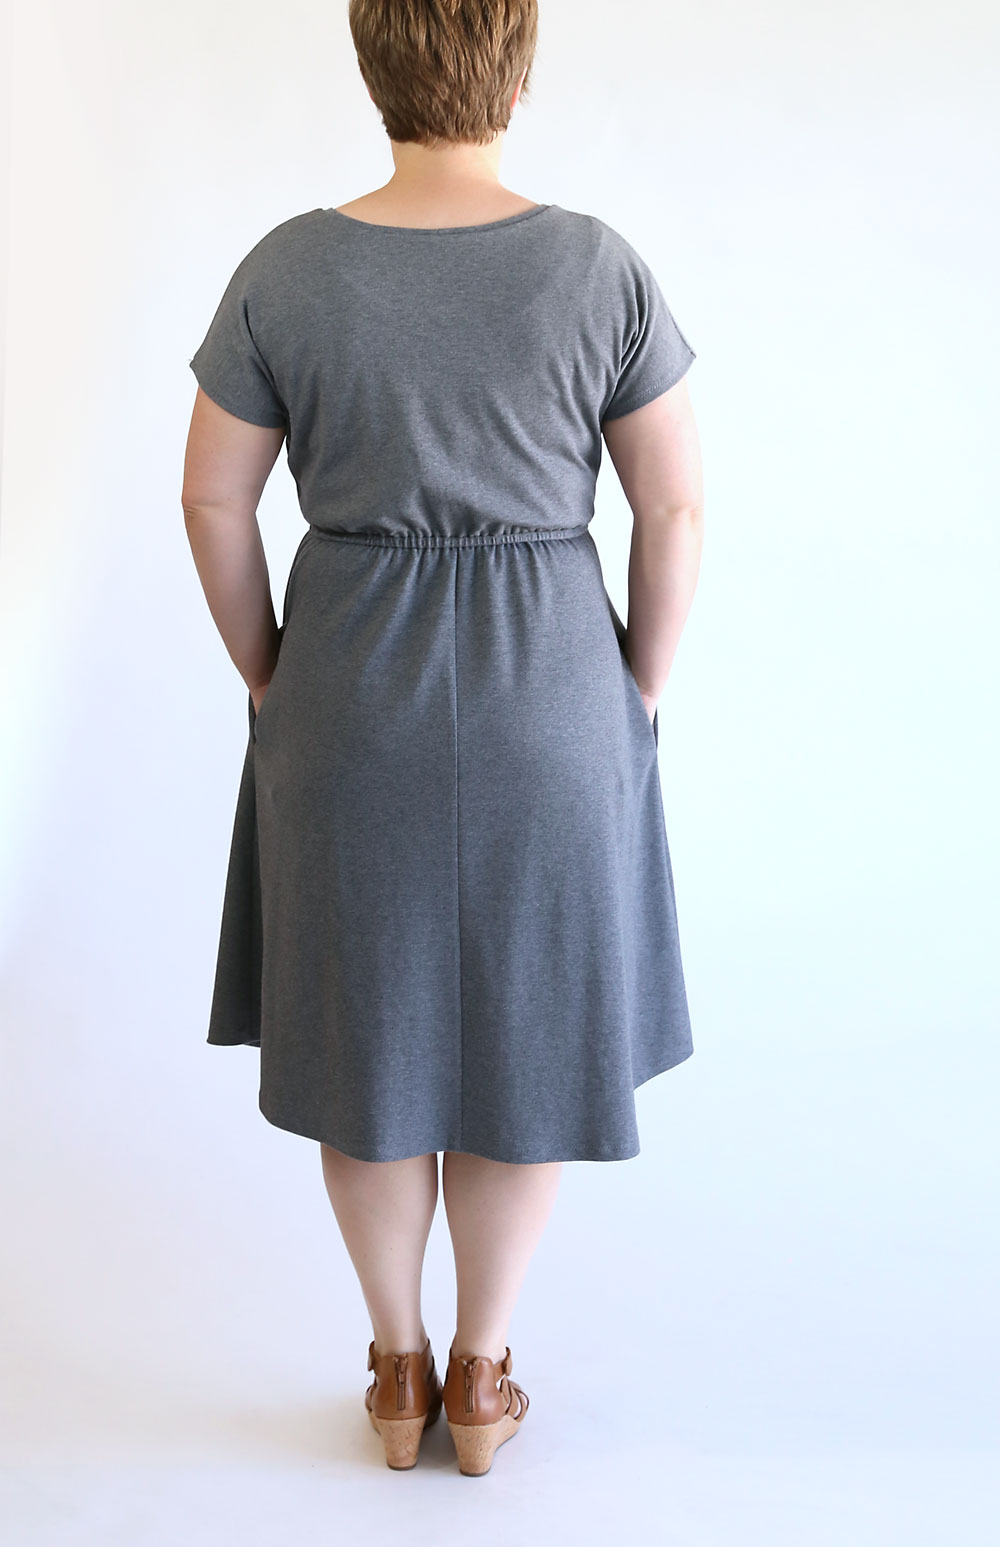 The Everyday Dress free sewing pattern in women's size large.